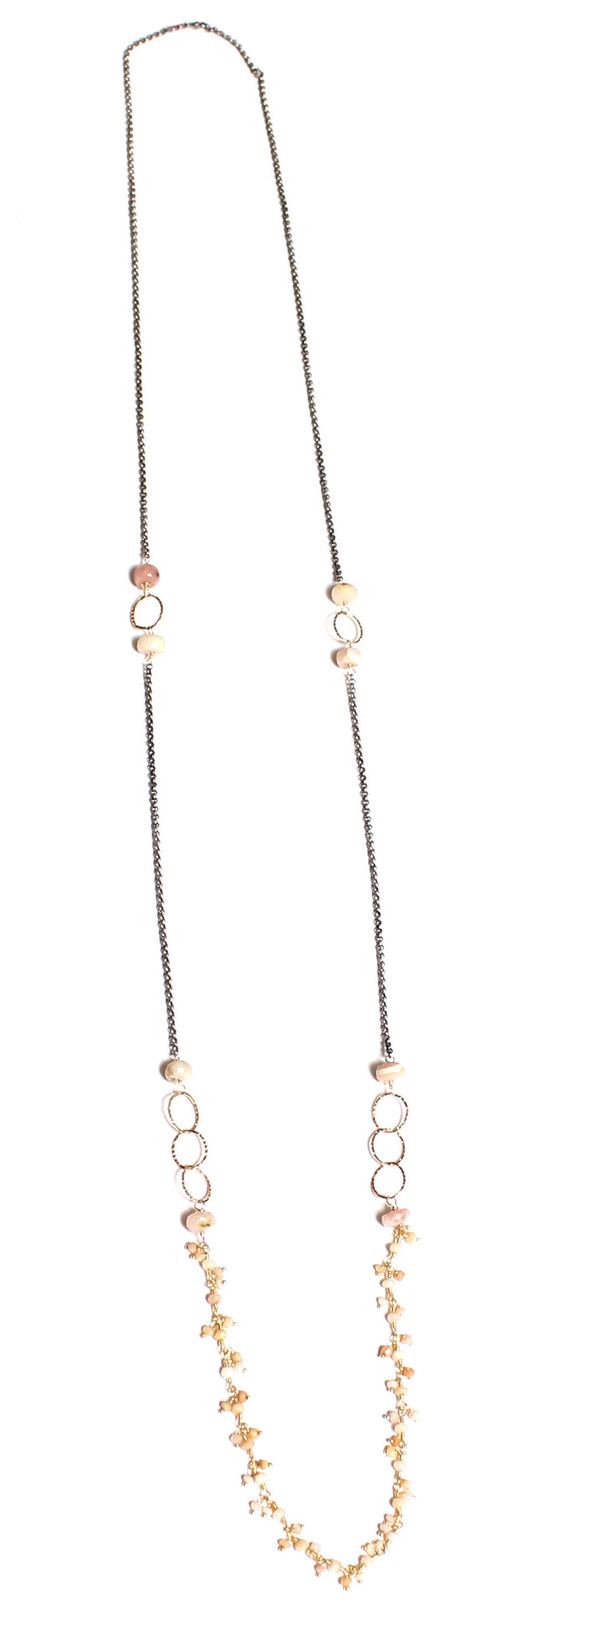 James and Jezebelle Pink Opal with Oxidized Chain Necklace